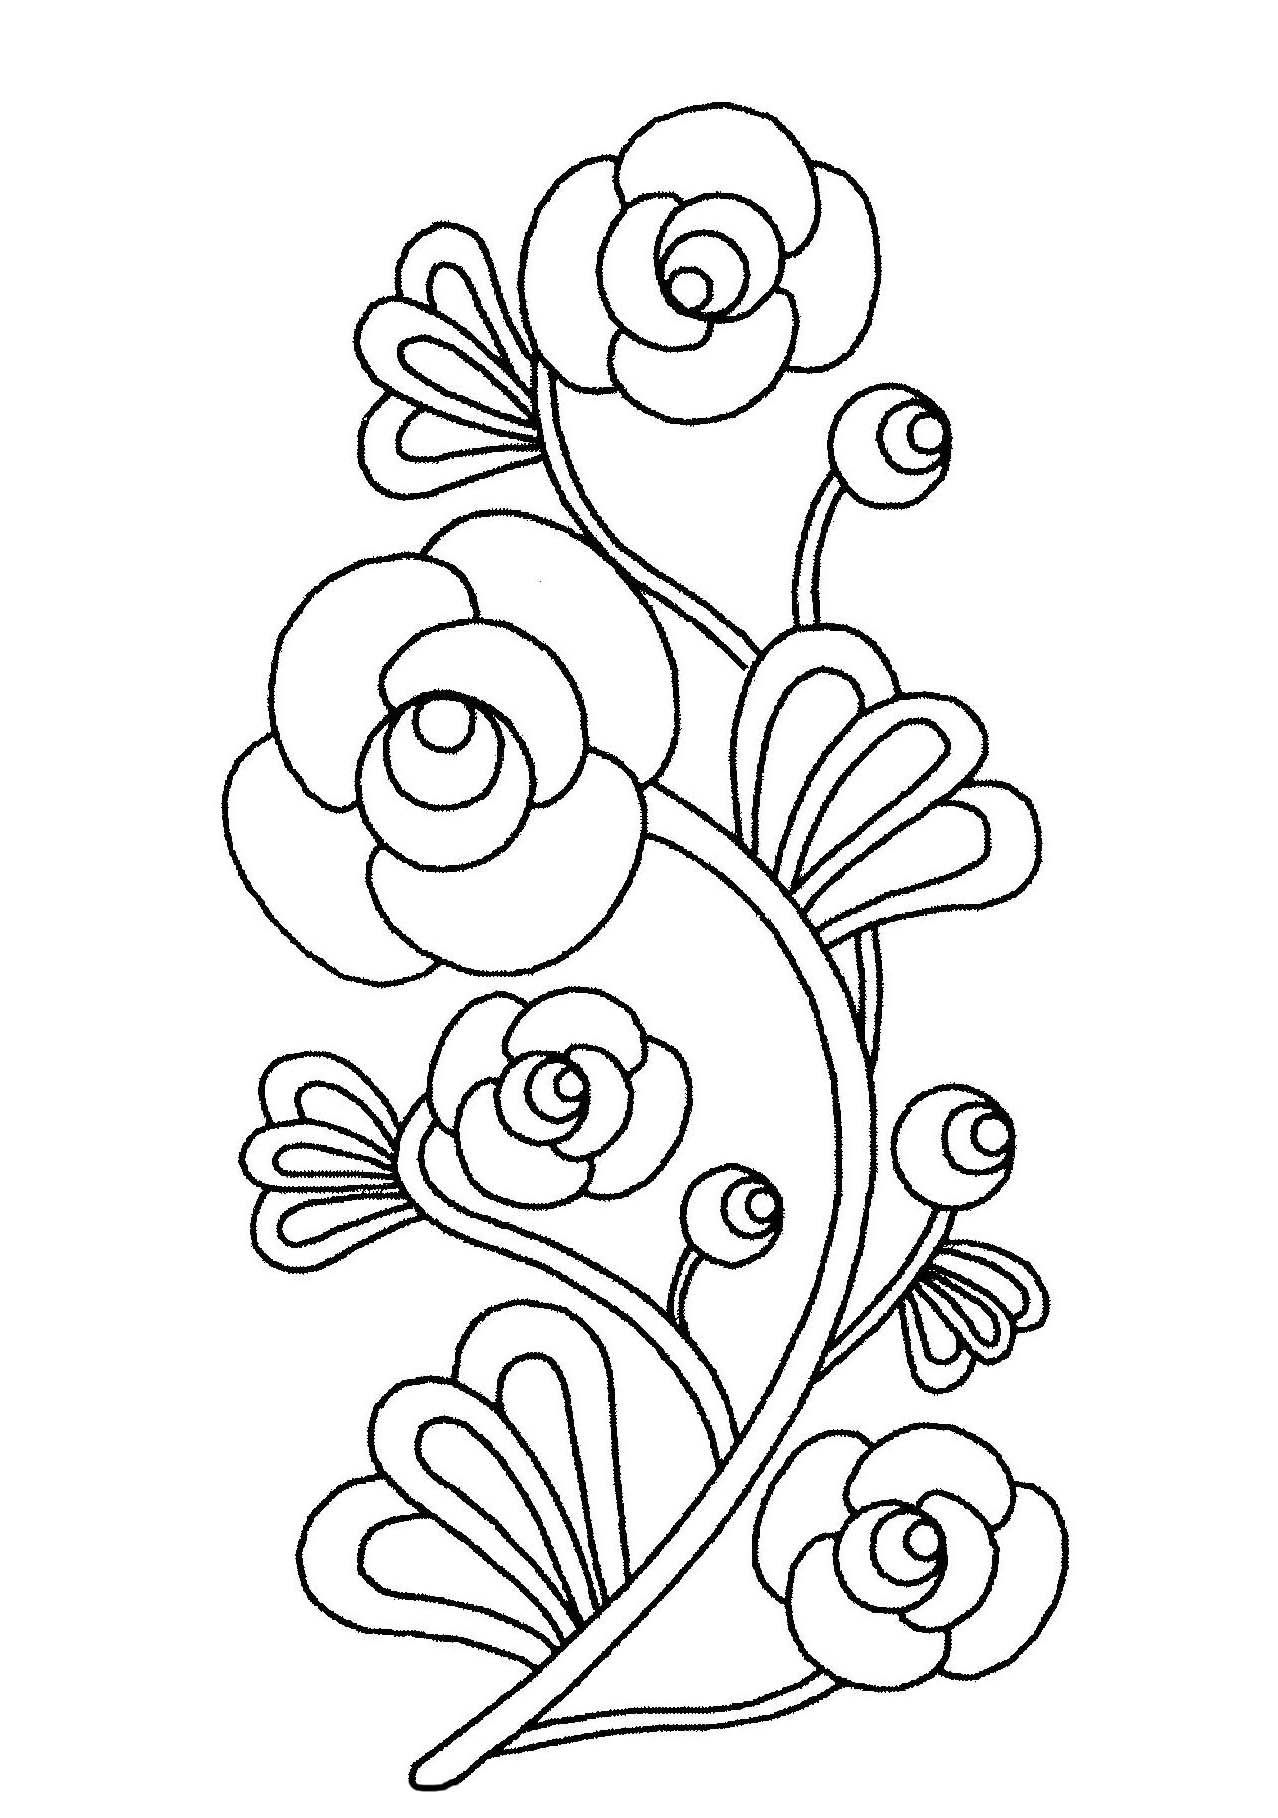 printable simple flower coloring pages beautiful flowers flowers coloring pages for kids to simple printable flower pages coloring